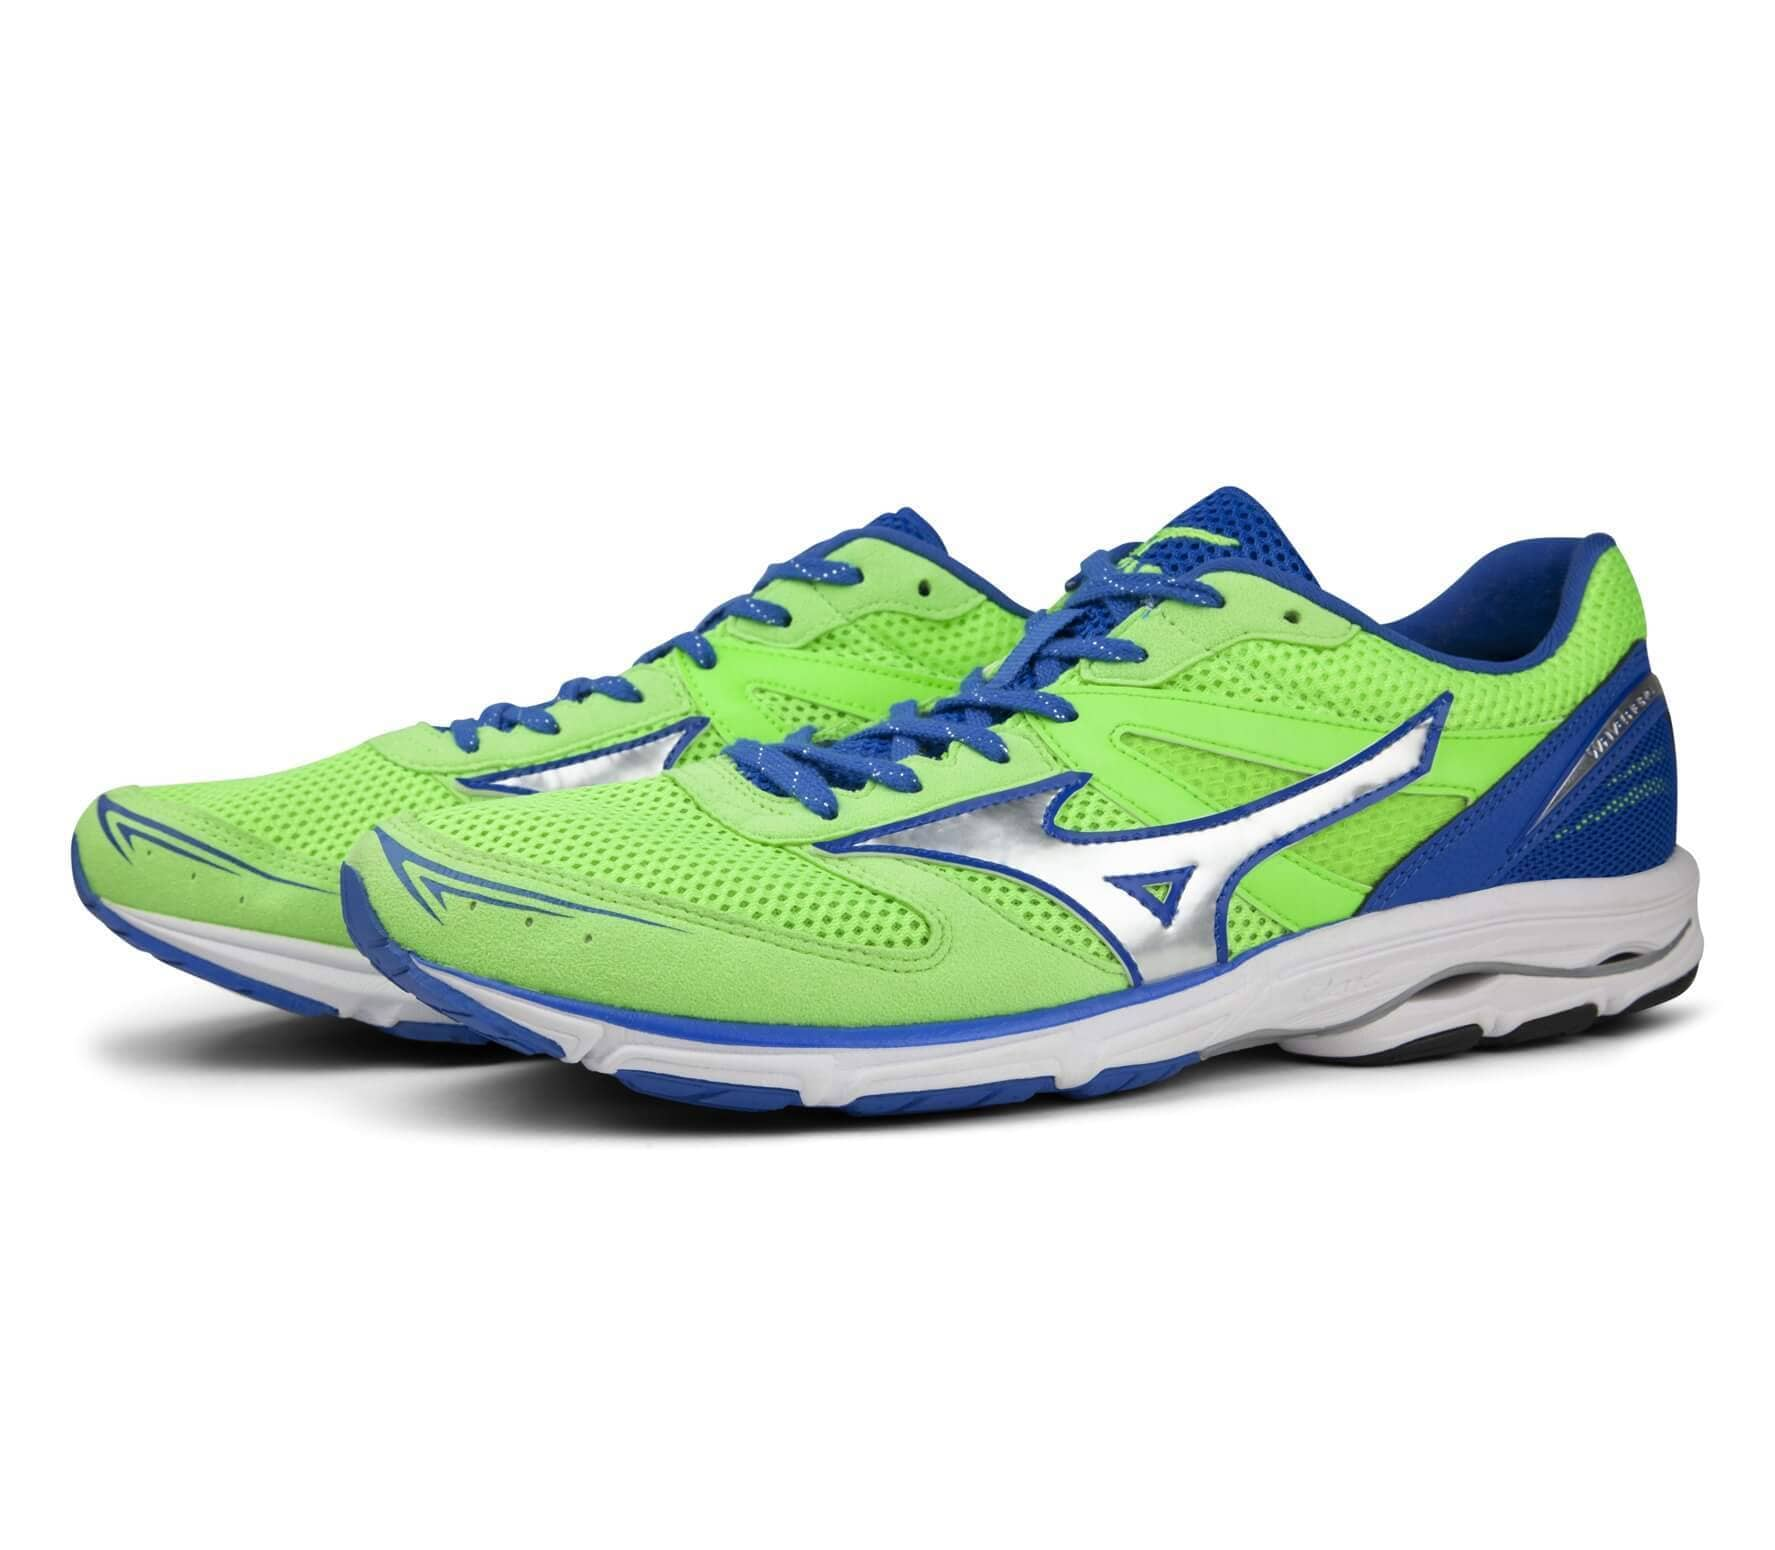 Mizuno Wave Aero 15 men's running shoes (light yellowblue)